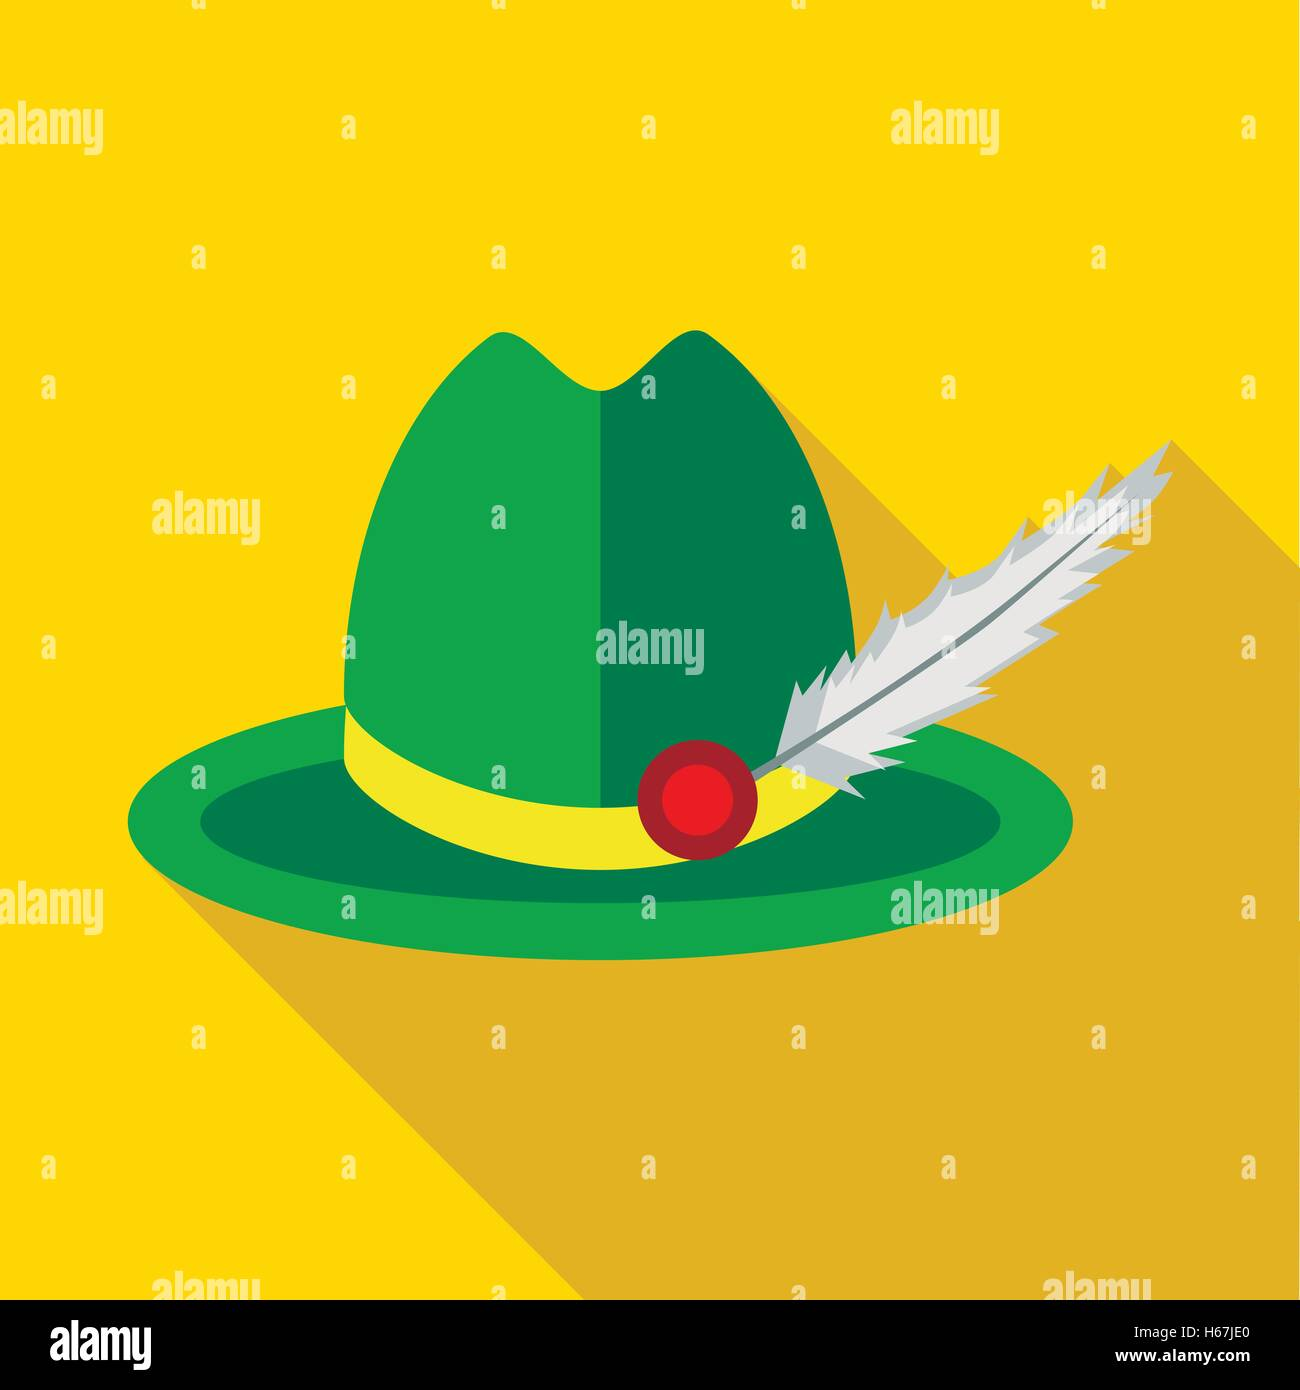 4421637ed21 Green hat with a feather icon